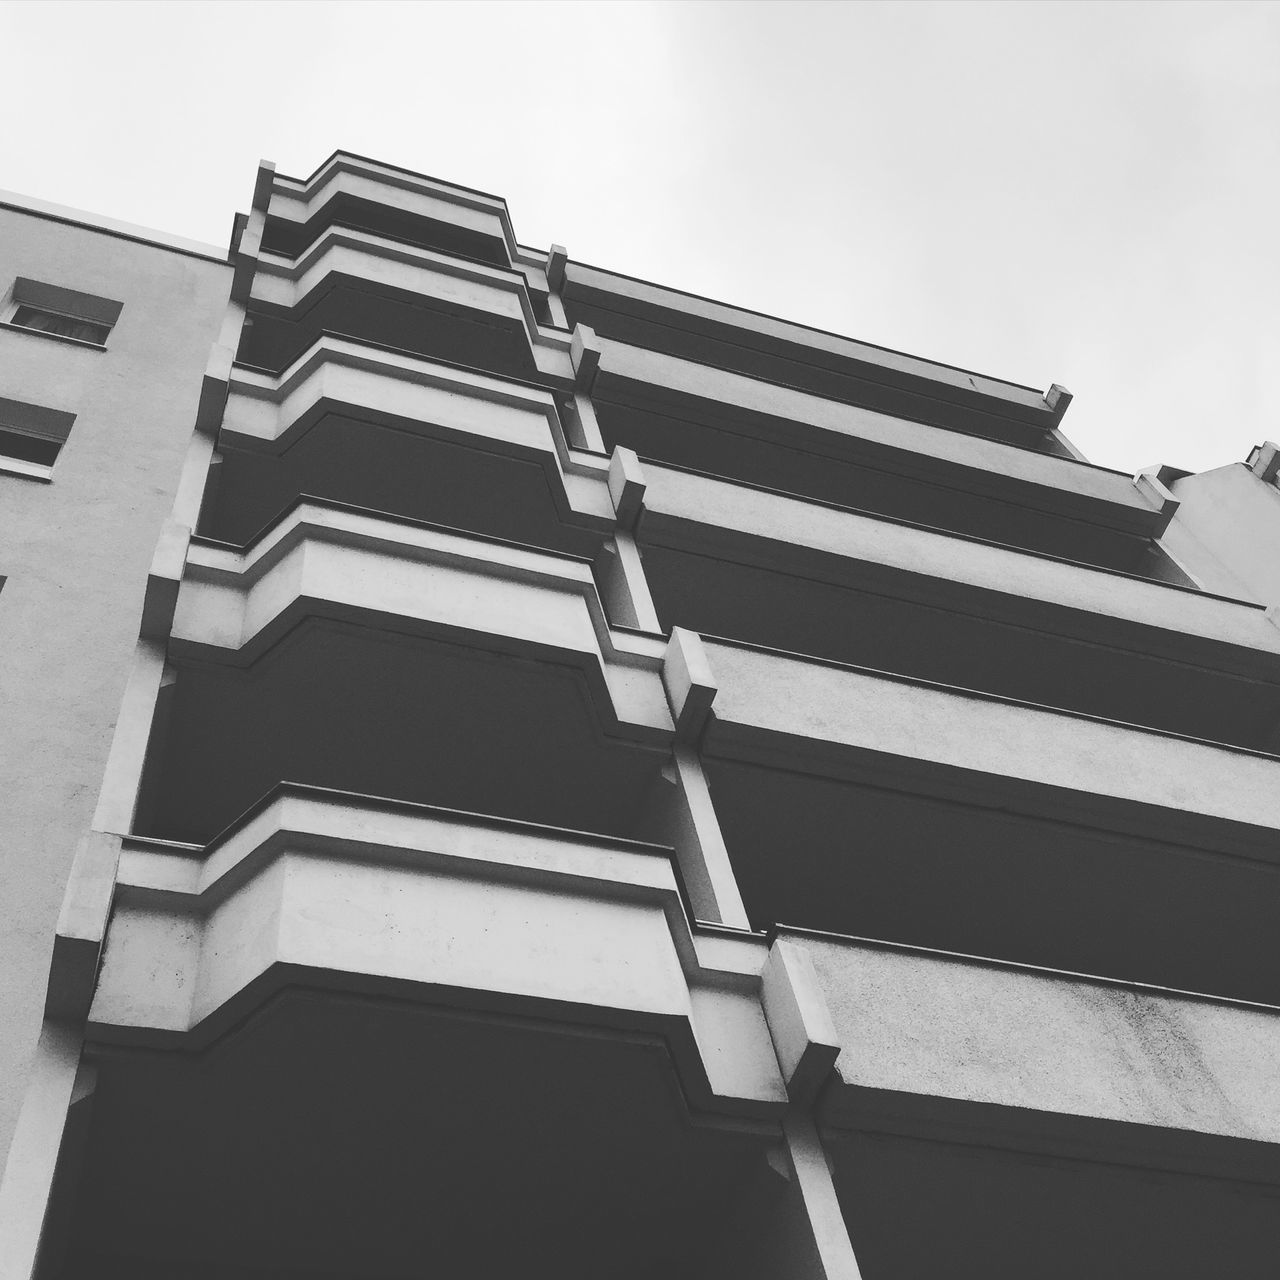 Abstract Abstract Photography Architecture Architecture_collection Balcony Berlin Photography Berliner Ansichten Berlinstagram Black And White Bnw Building Exterior Built Structure City Clear Sky Concrete Day Low Angle View Minimal Modern No People Outdoors Pattern Plattenbau Plattenbauromantik Sky